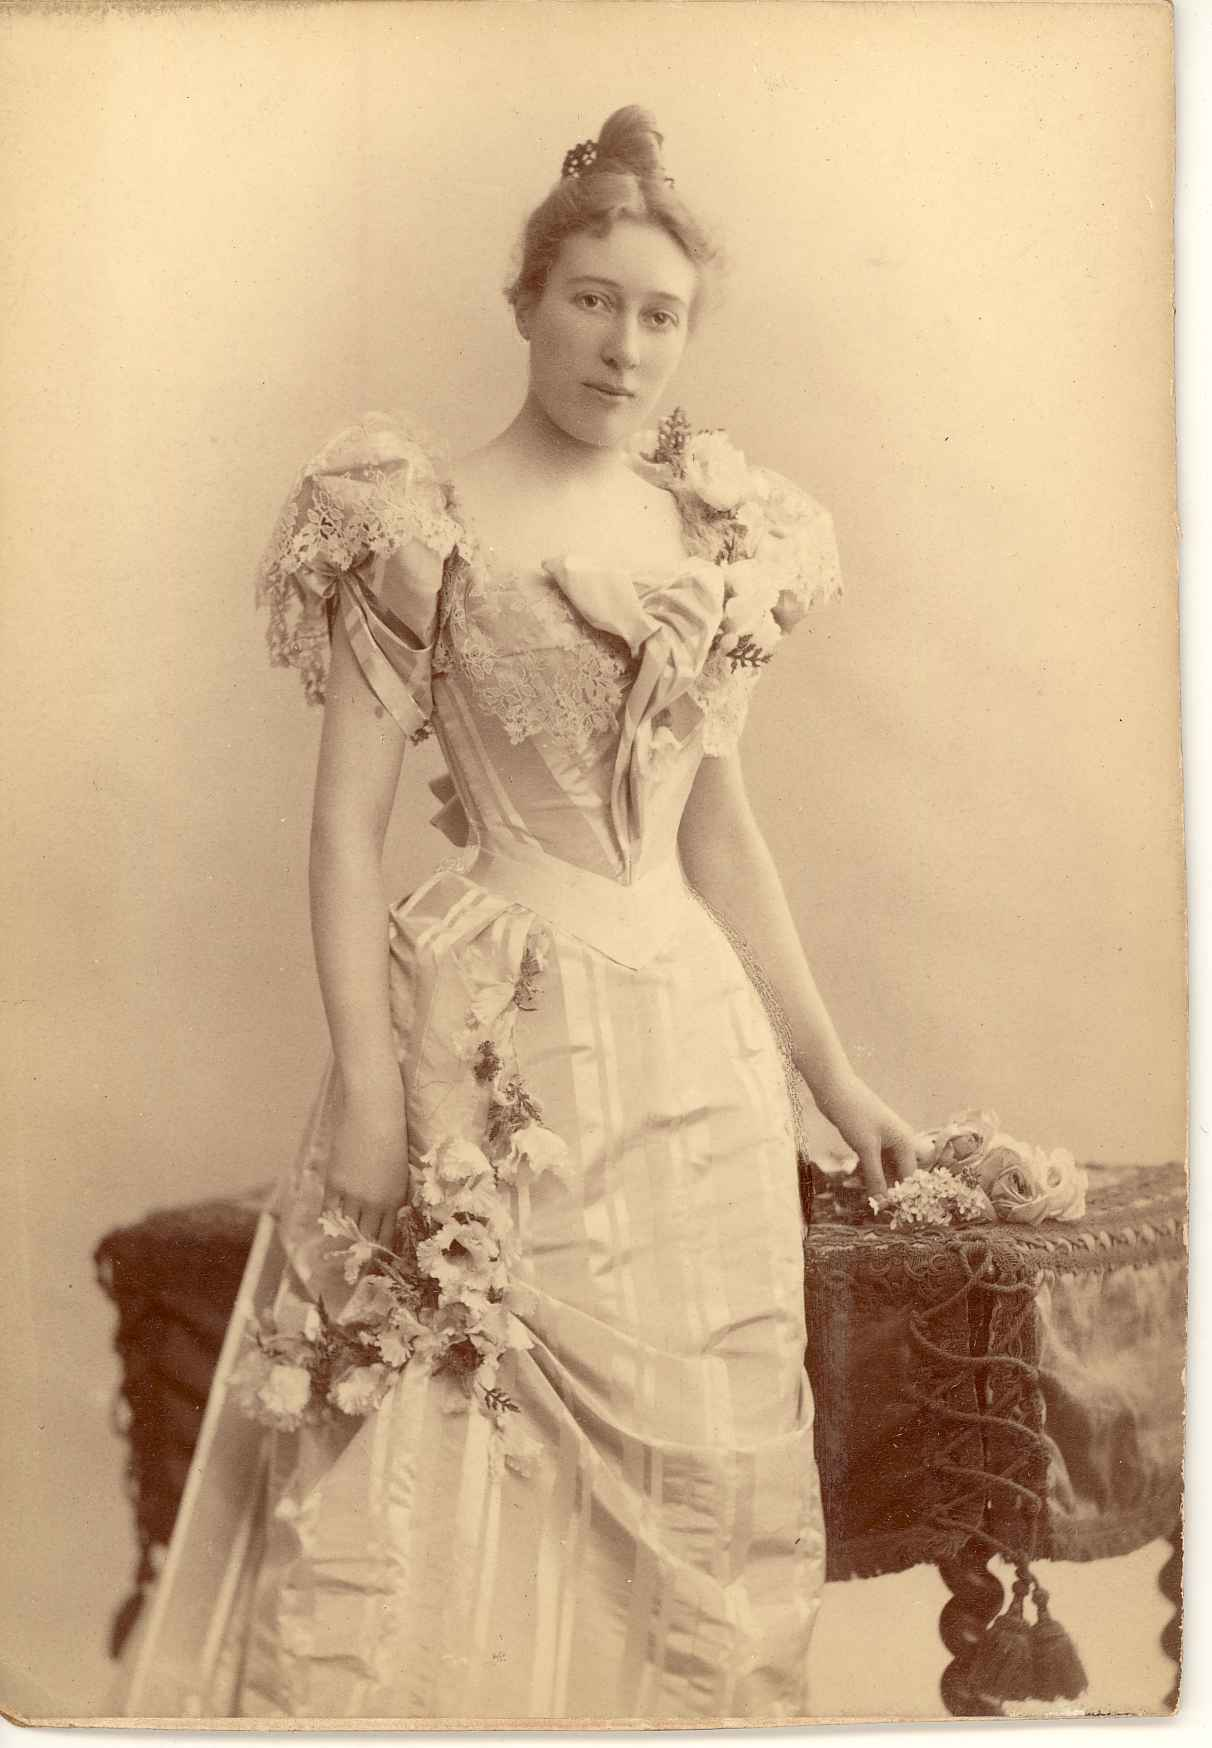 Images of Belle Skinner as a young woman